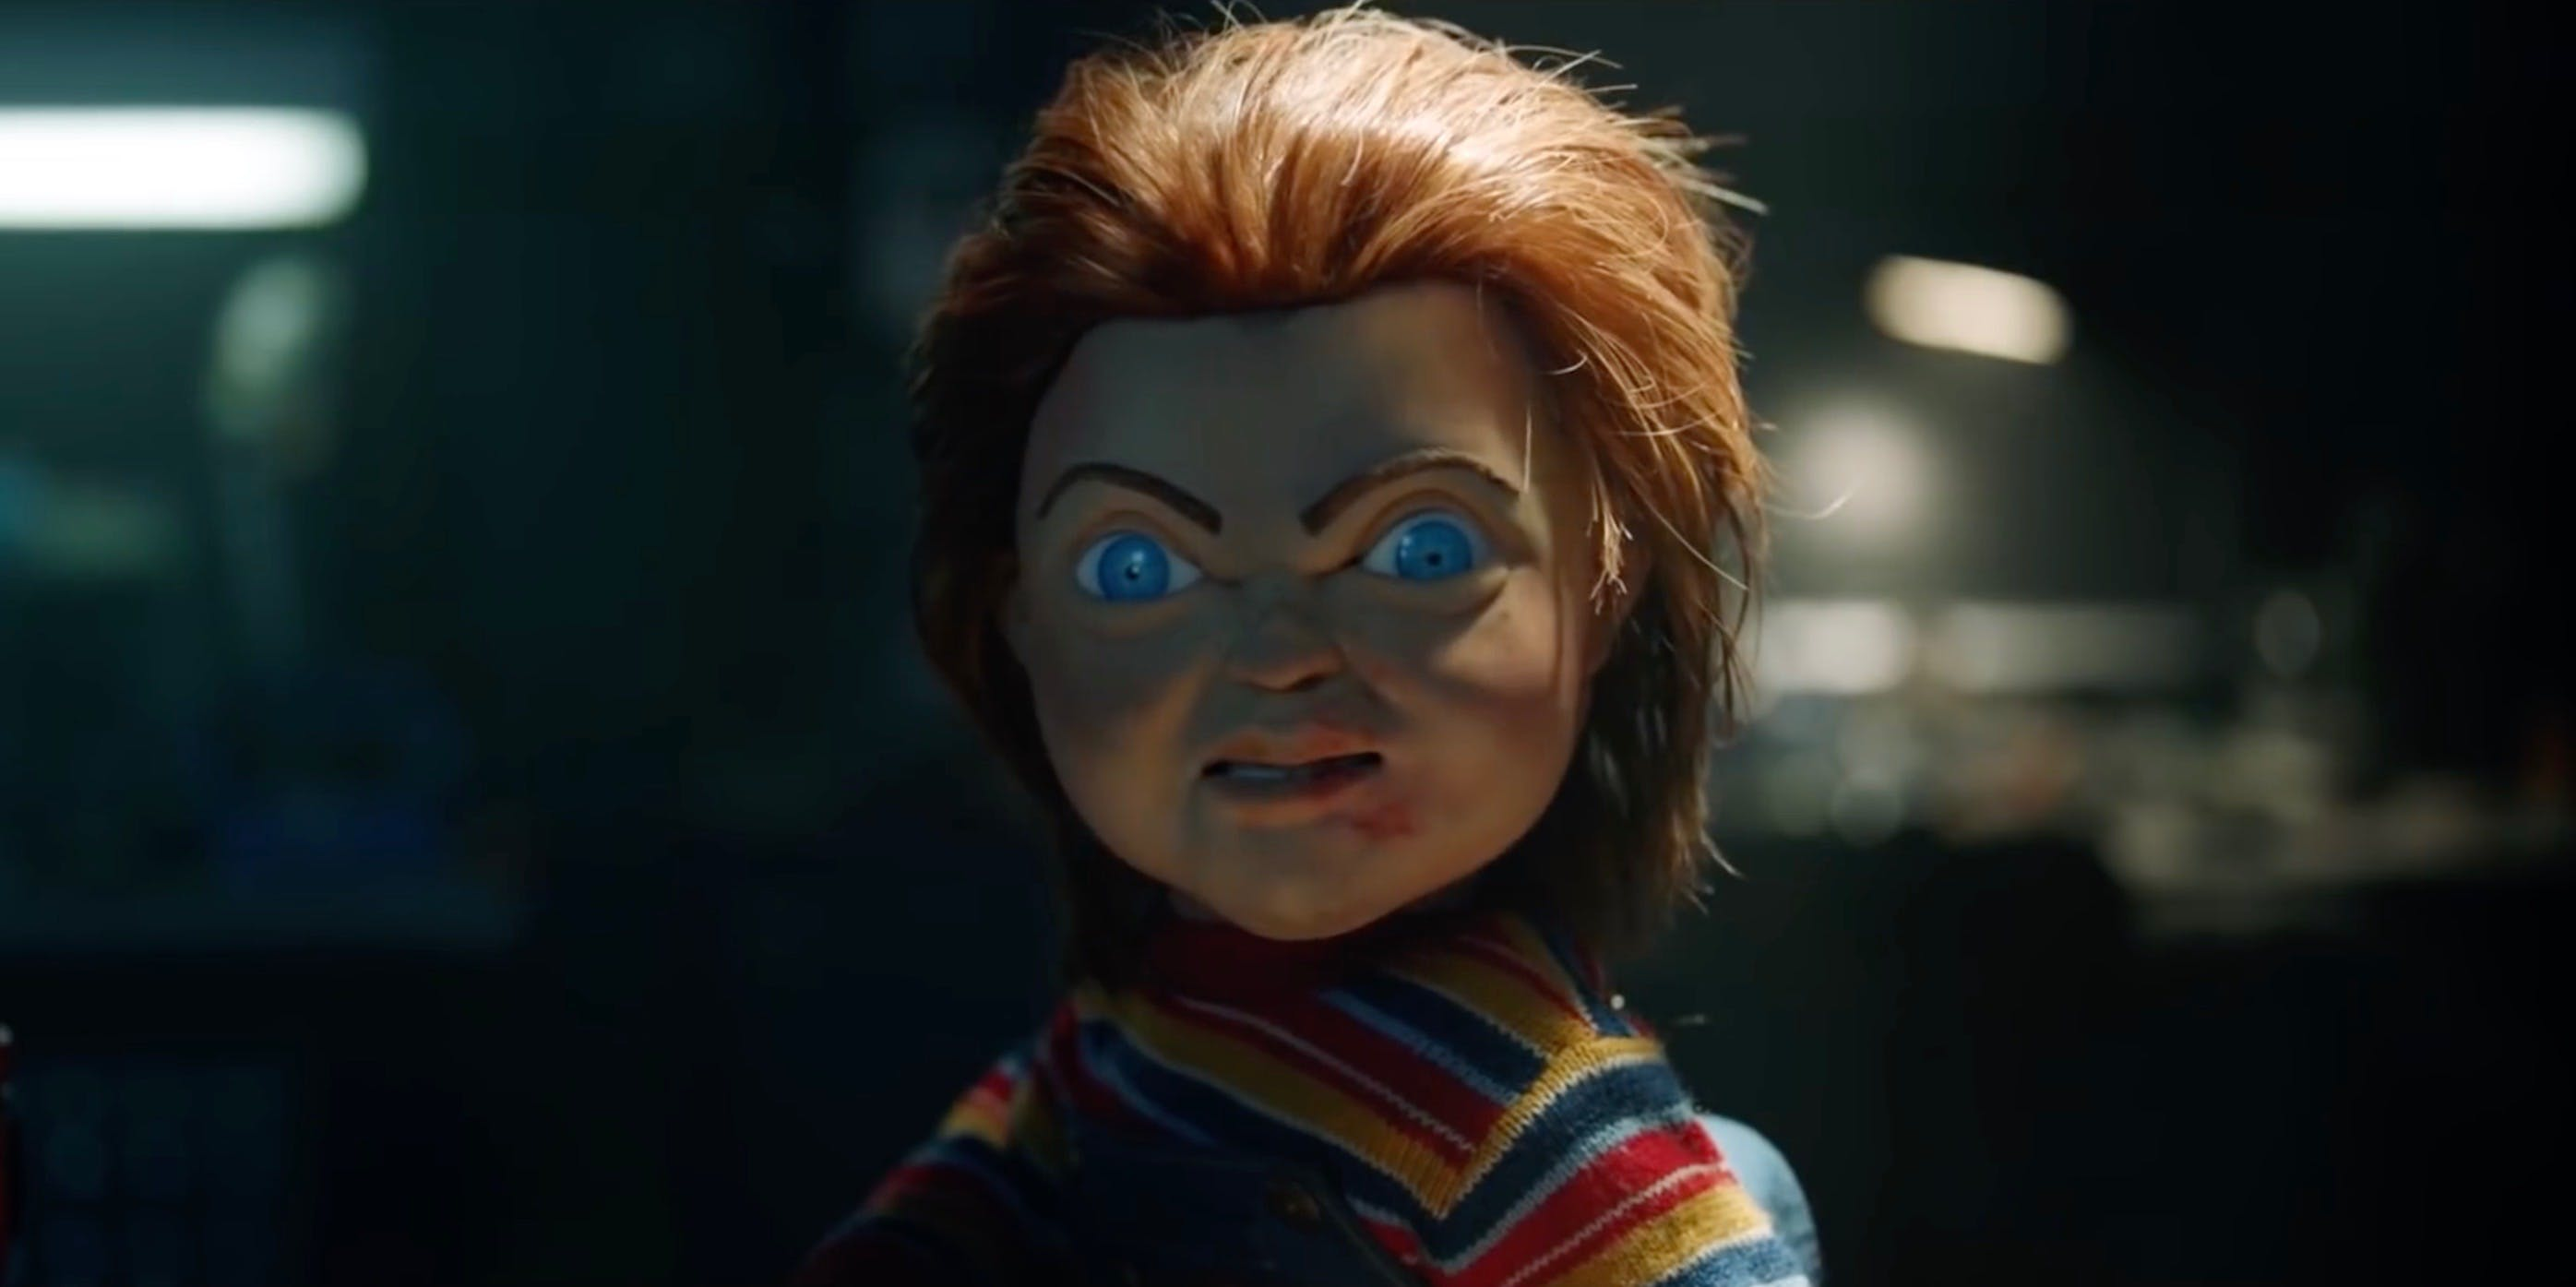 REVIEW: 'Child's Play' is a modernized and satisfying take on an old horror classic